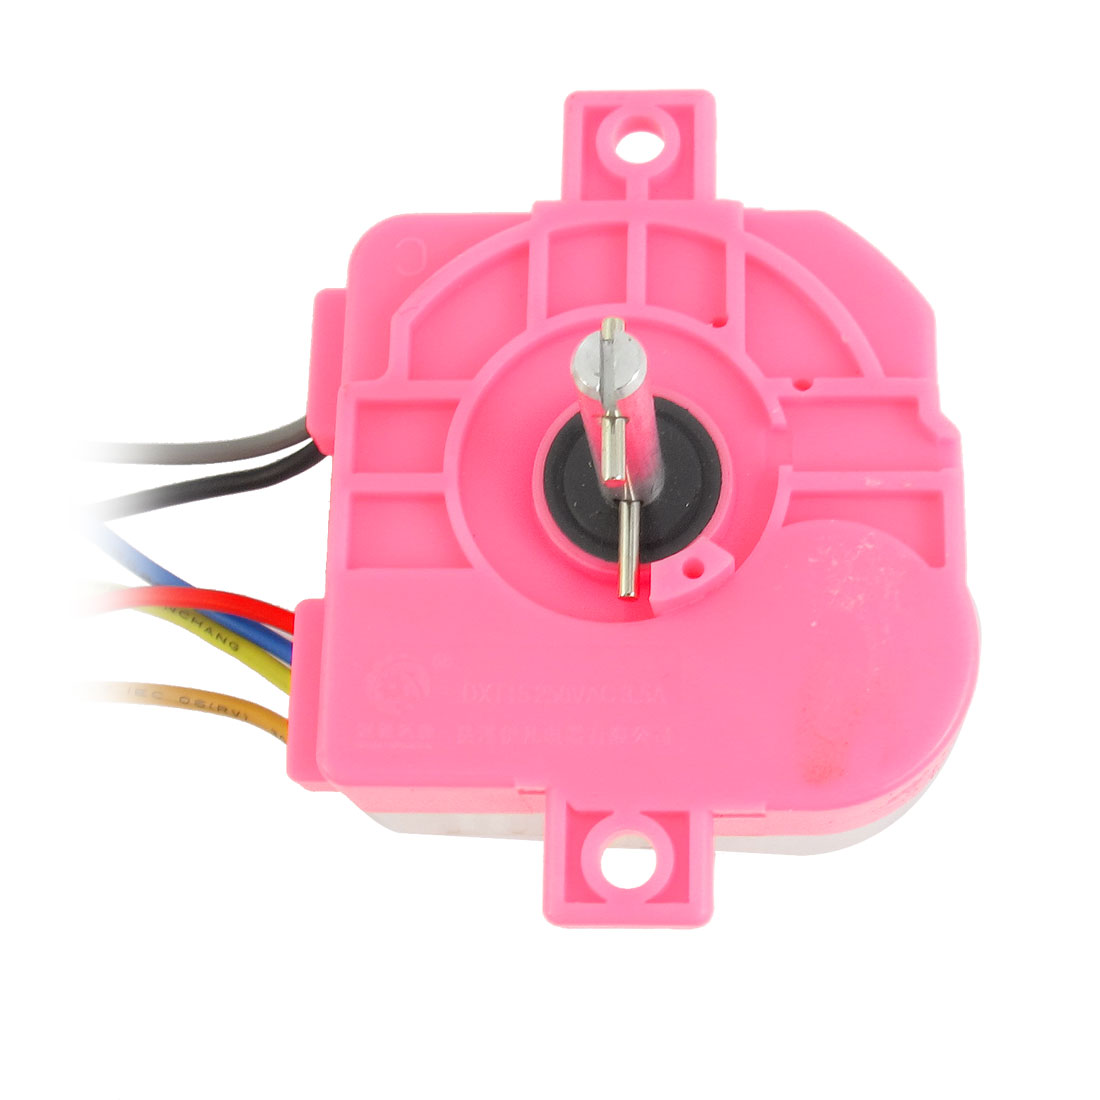 AC 250V 3.5A 6 Wires 180 Degree Rotary Shaft Washing Machine Washer Timer Fuchsia